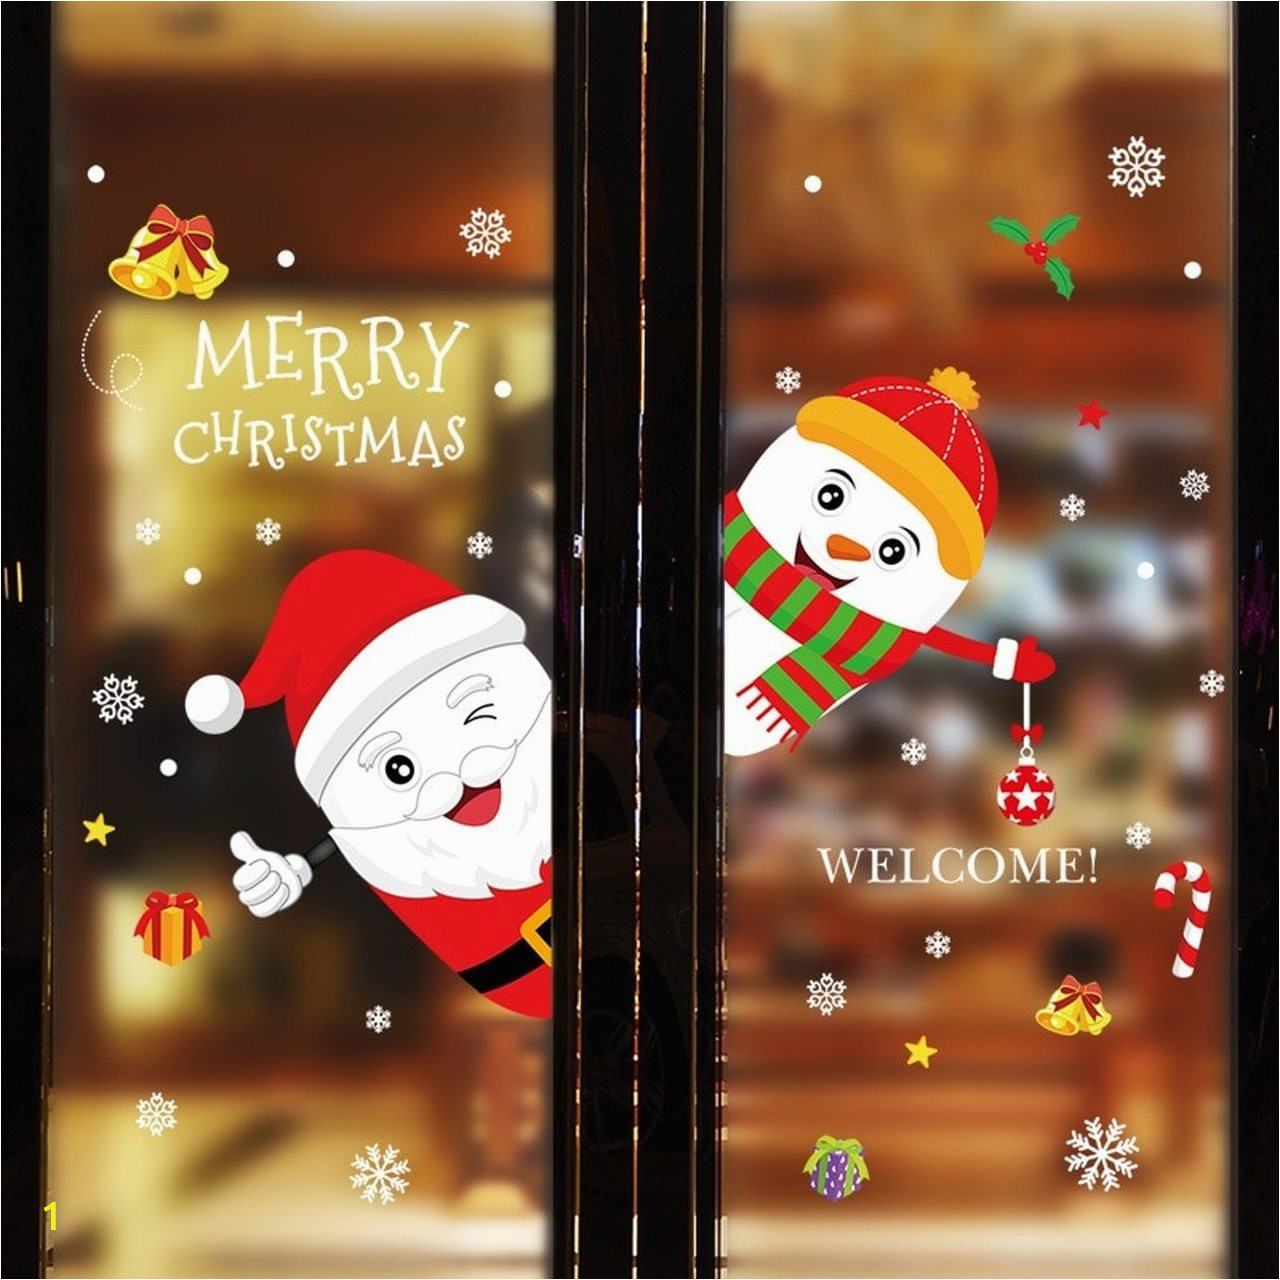 DIY Merry Christmas Wall Stickers Window Glass Festival Decals Santa Murals New Year Christmas Decorations for c=2